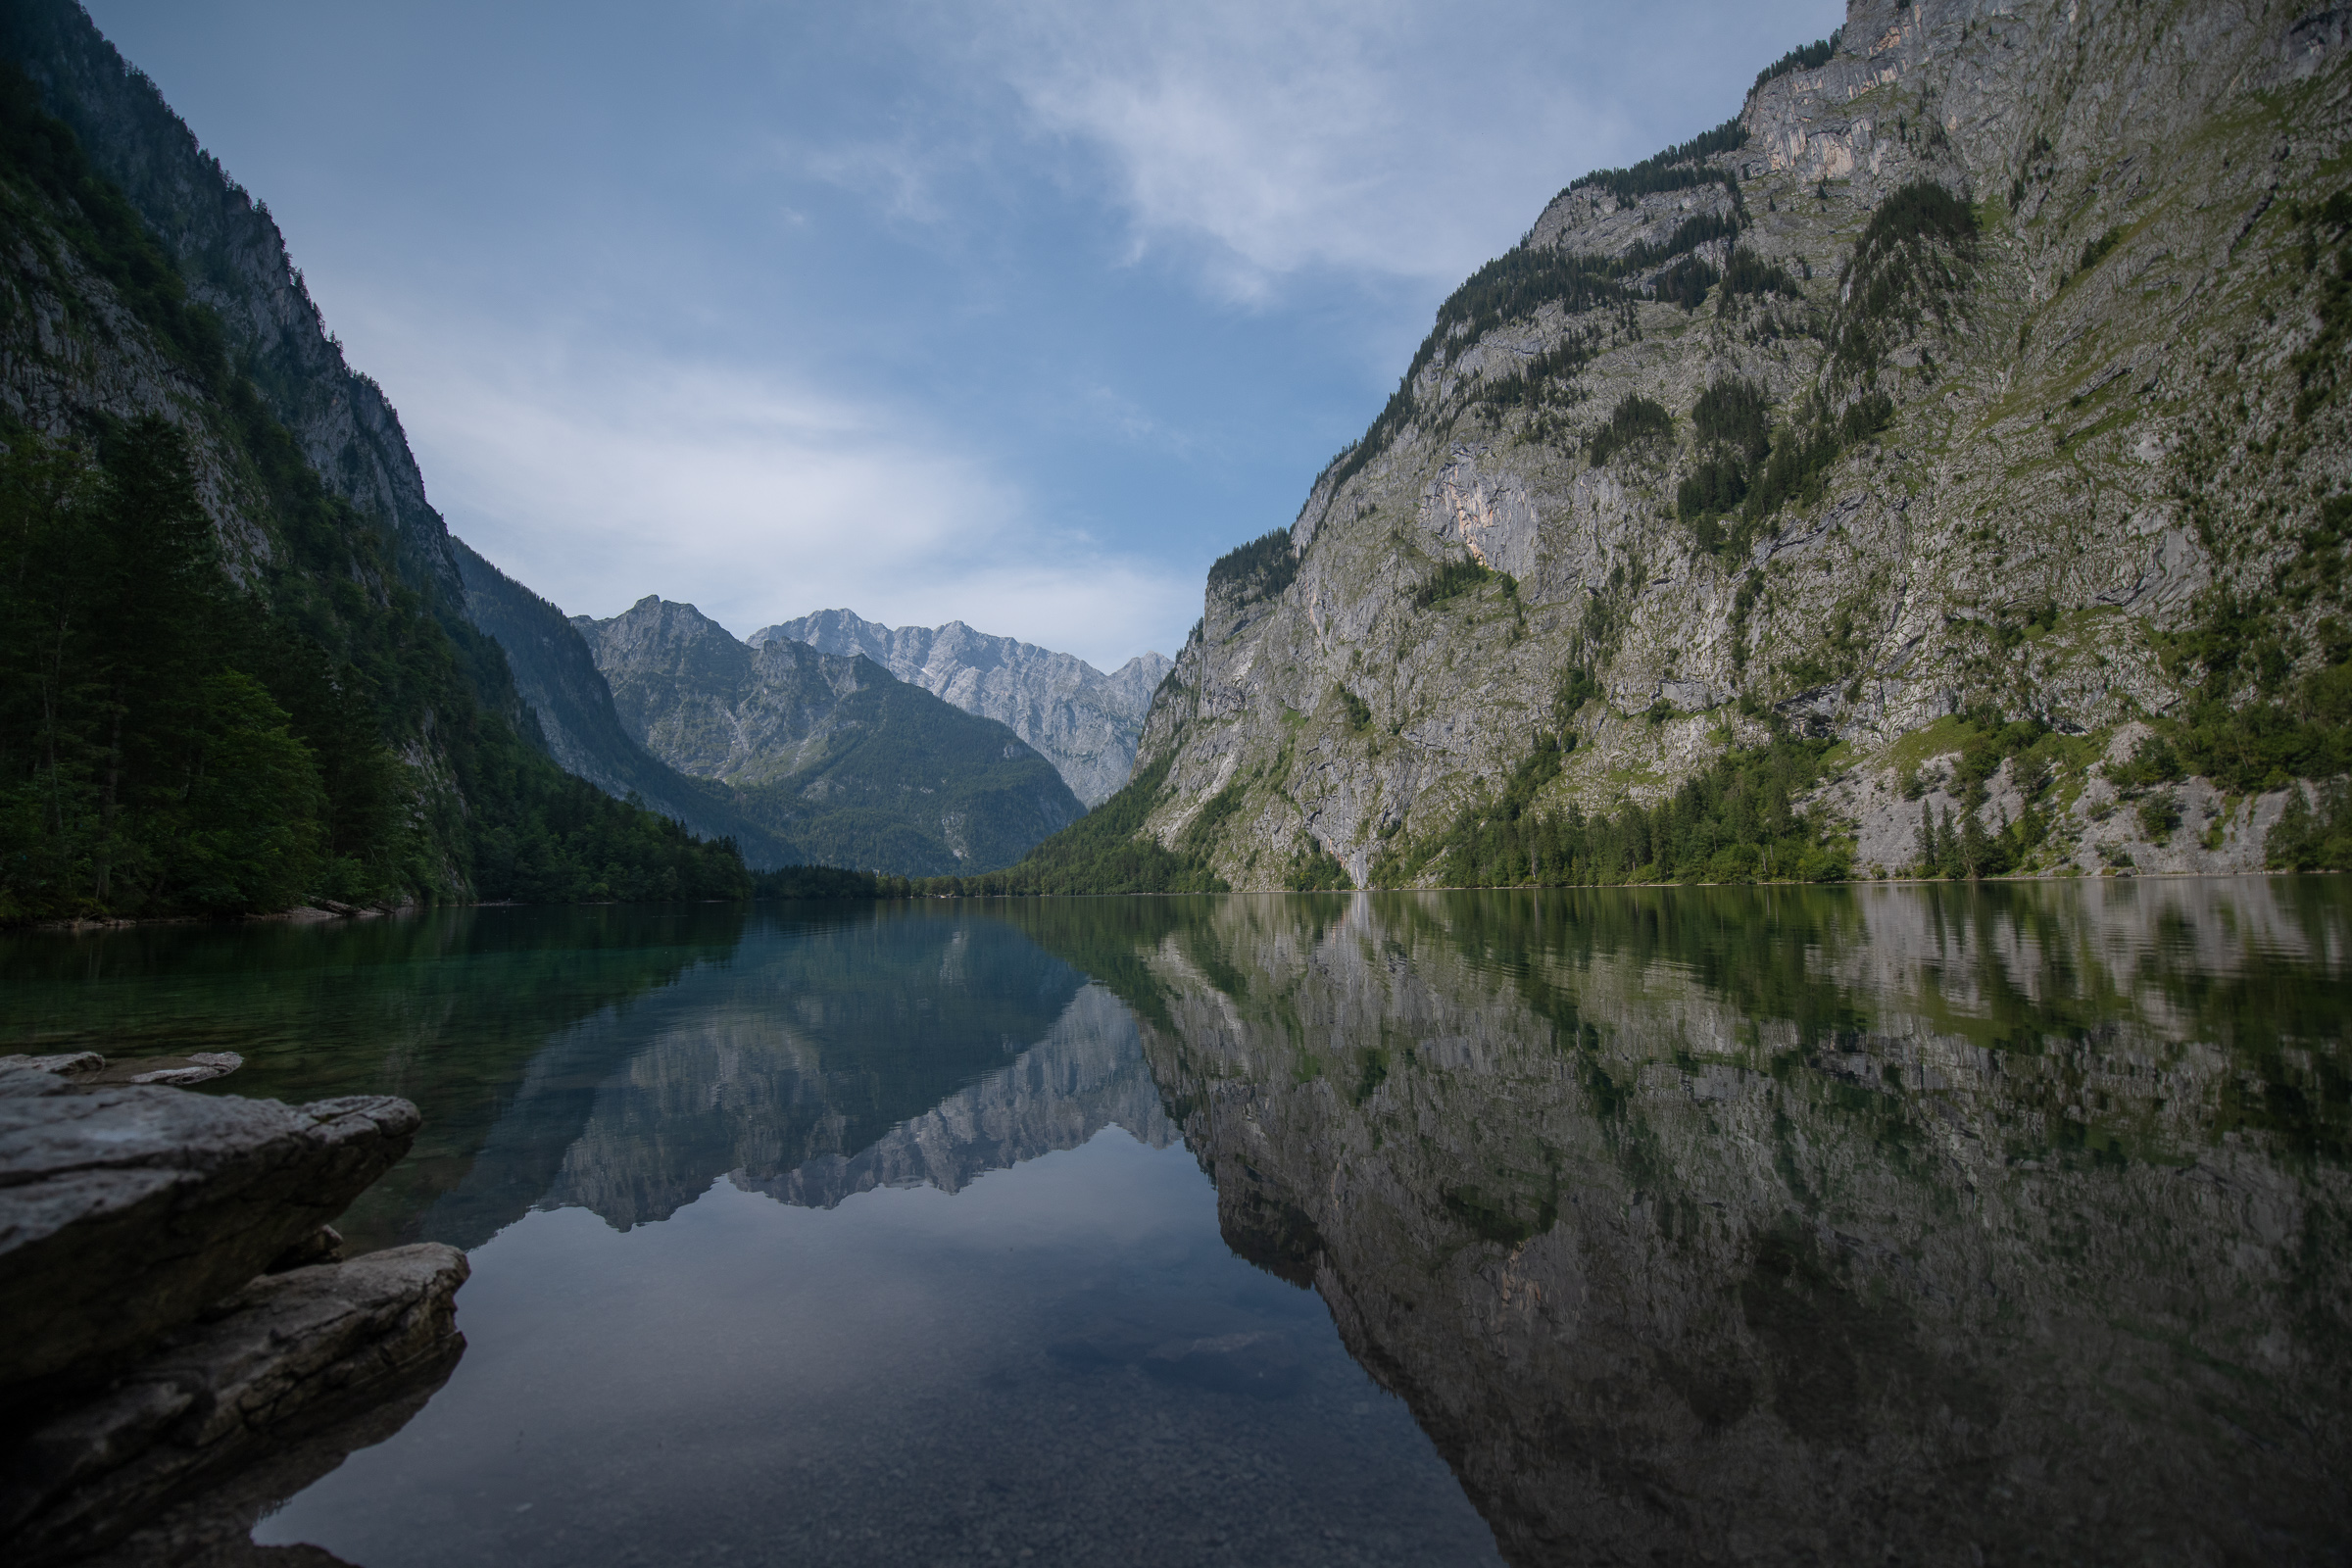 One of my favorites from the entire trip. Öbersee